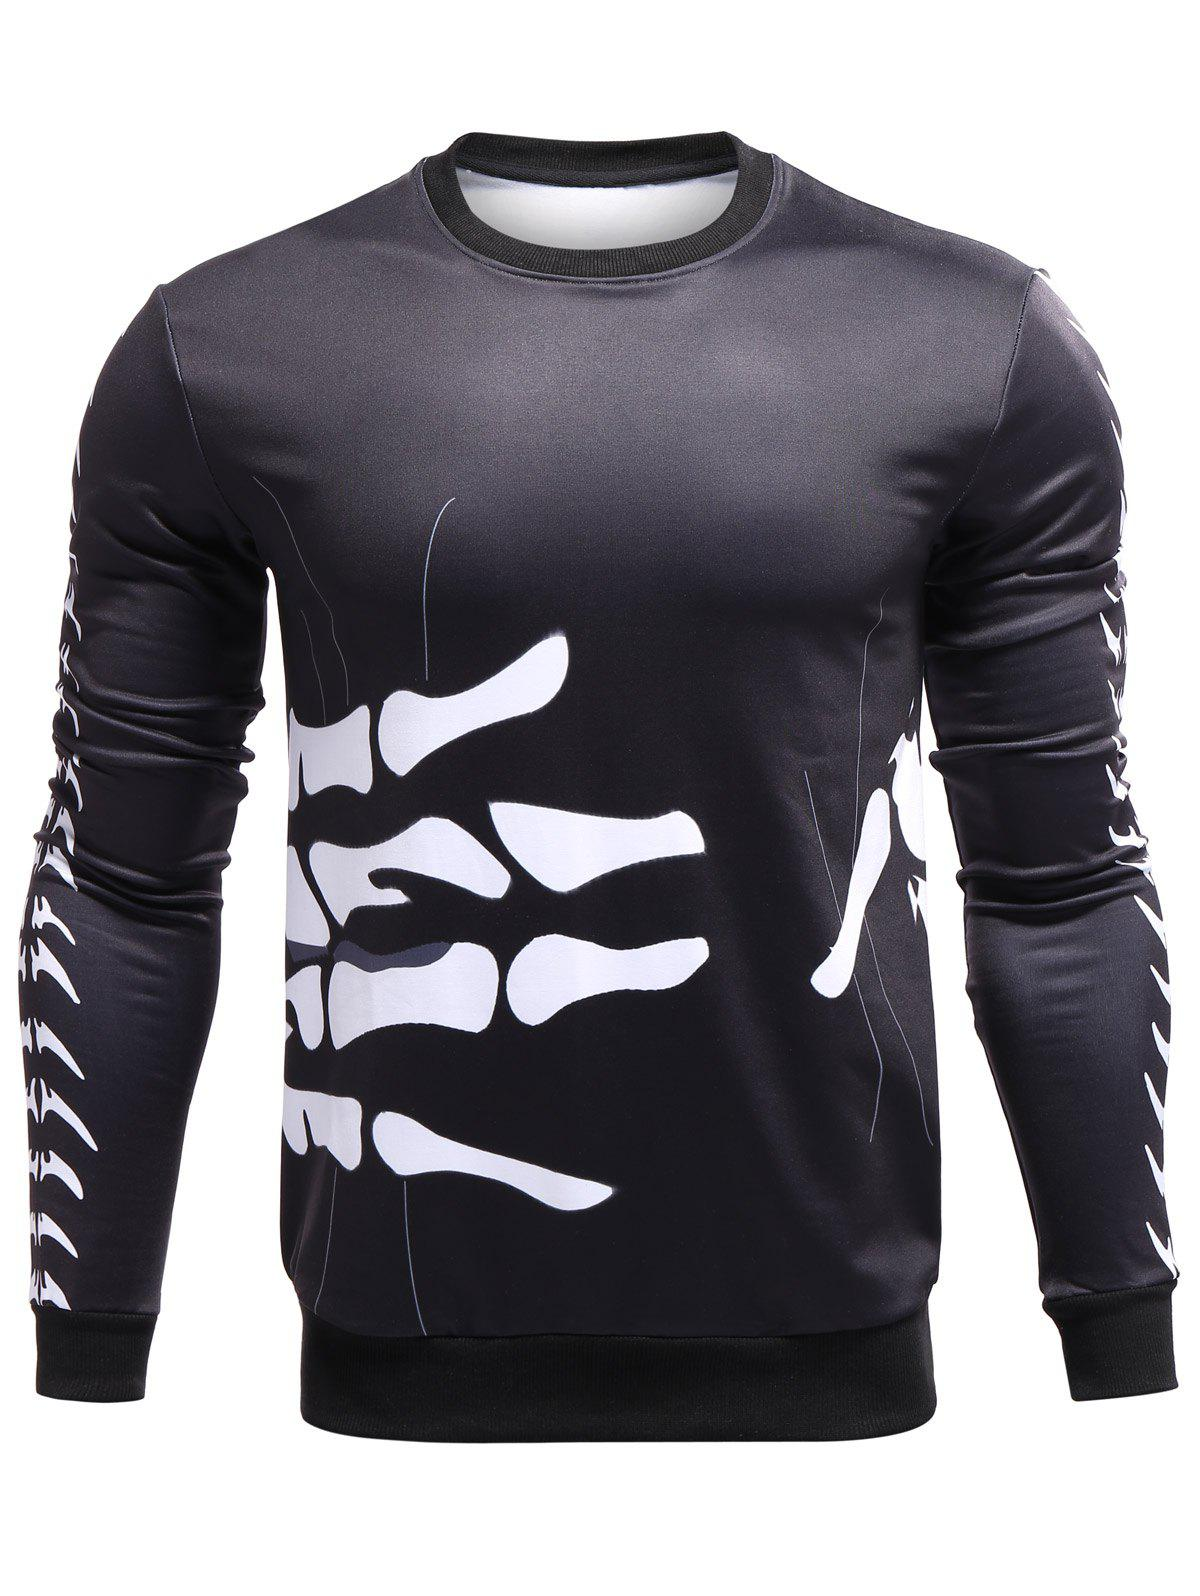 Crew Neck 3D Bones of Hand Surround Print Sweatshirt - BLACK S